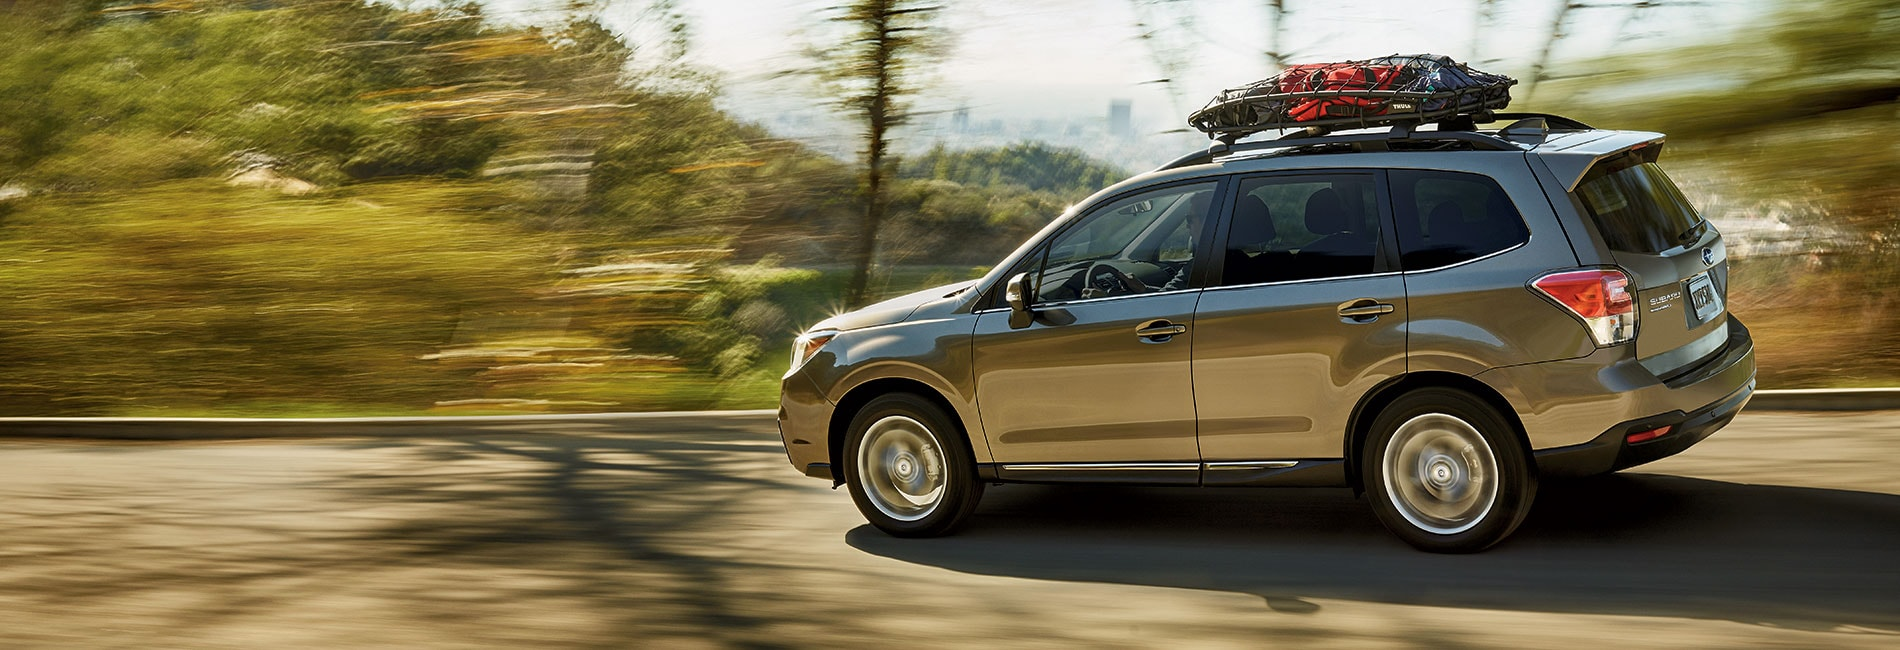 2020 Subaru Forester Exterior Features